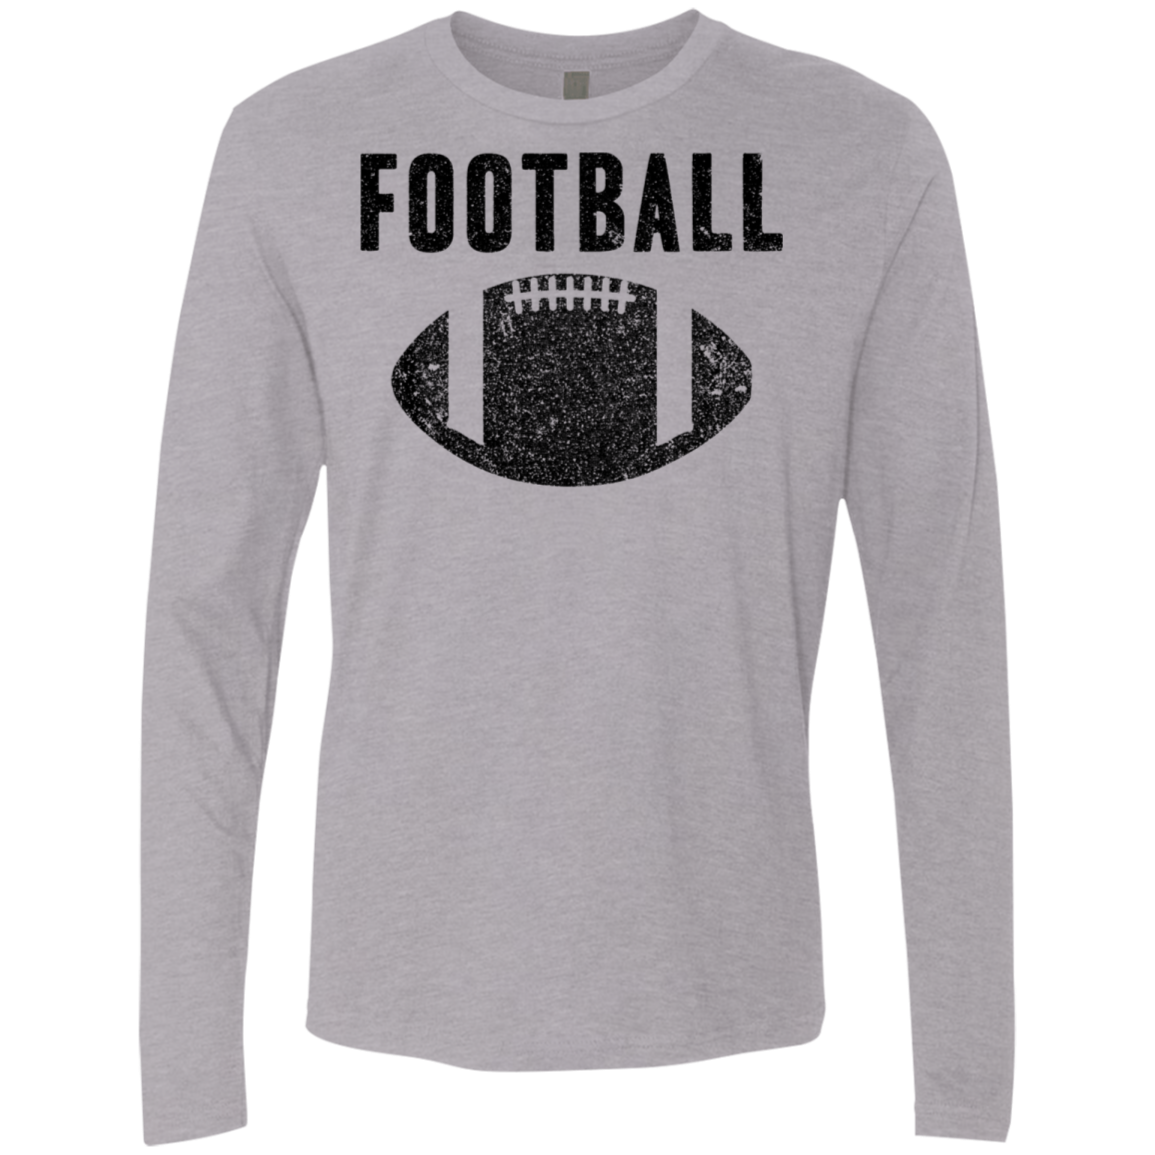 Football Men's Long Sleeve Tee